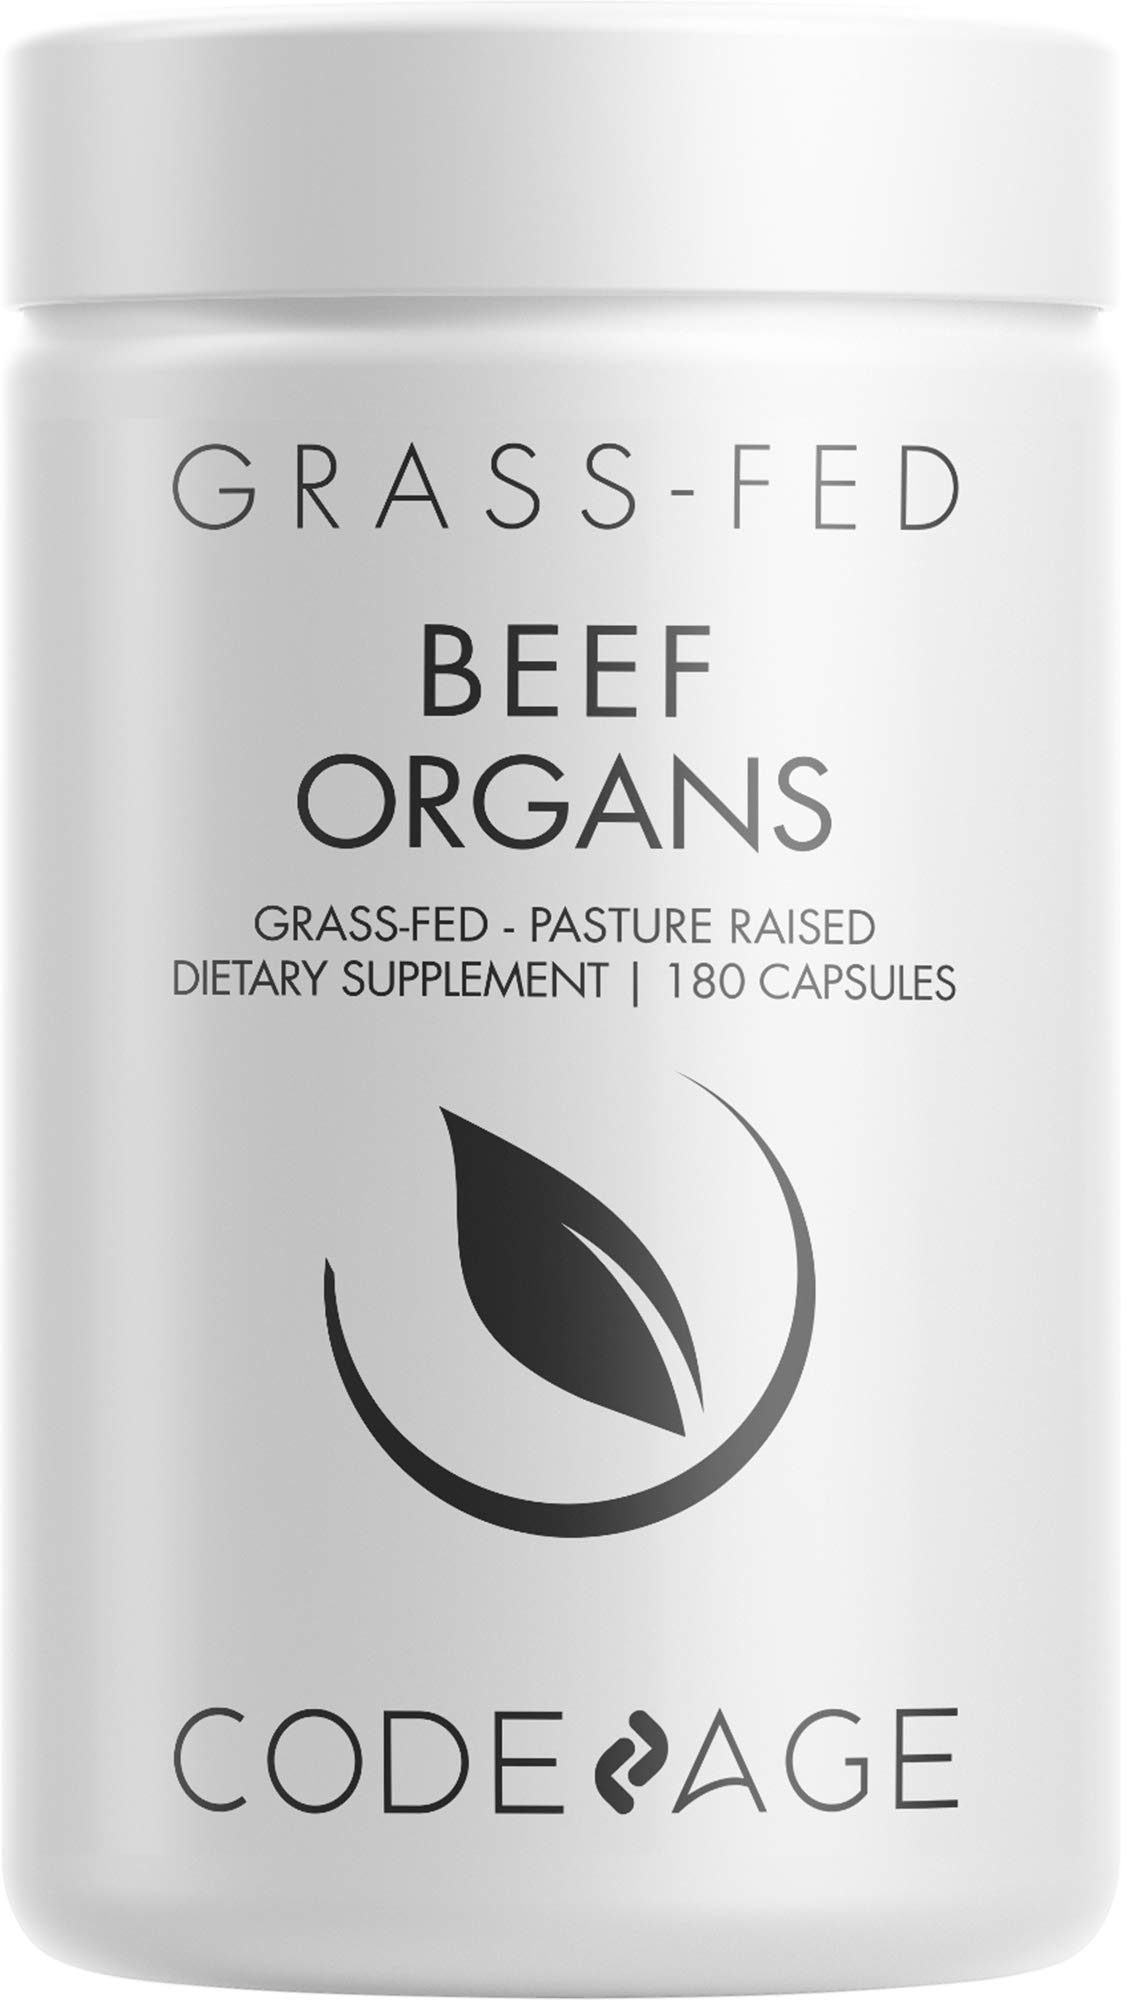 Codeage Grass Fed Beef Organs Supplement – Glandulars Supplements - Freeze Dried, Non-Defatted, Desiccated Liver, Heart, Kidney, Pancreas & Spleen Bovine Pills – Beef Vitamins - Non-GMO -180 Capsules